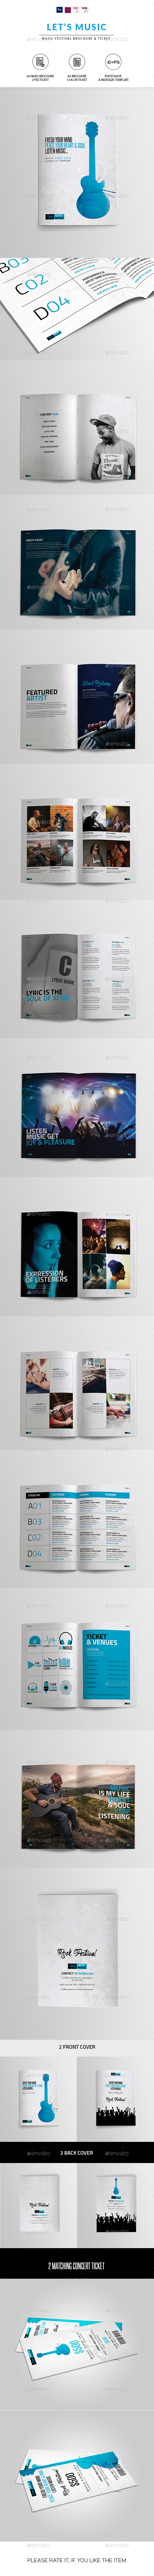 Music Festival Brochure | Indesign & Photoshop Template by smmrdesign